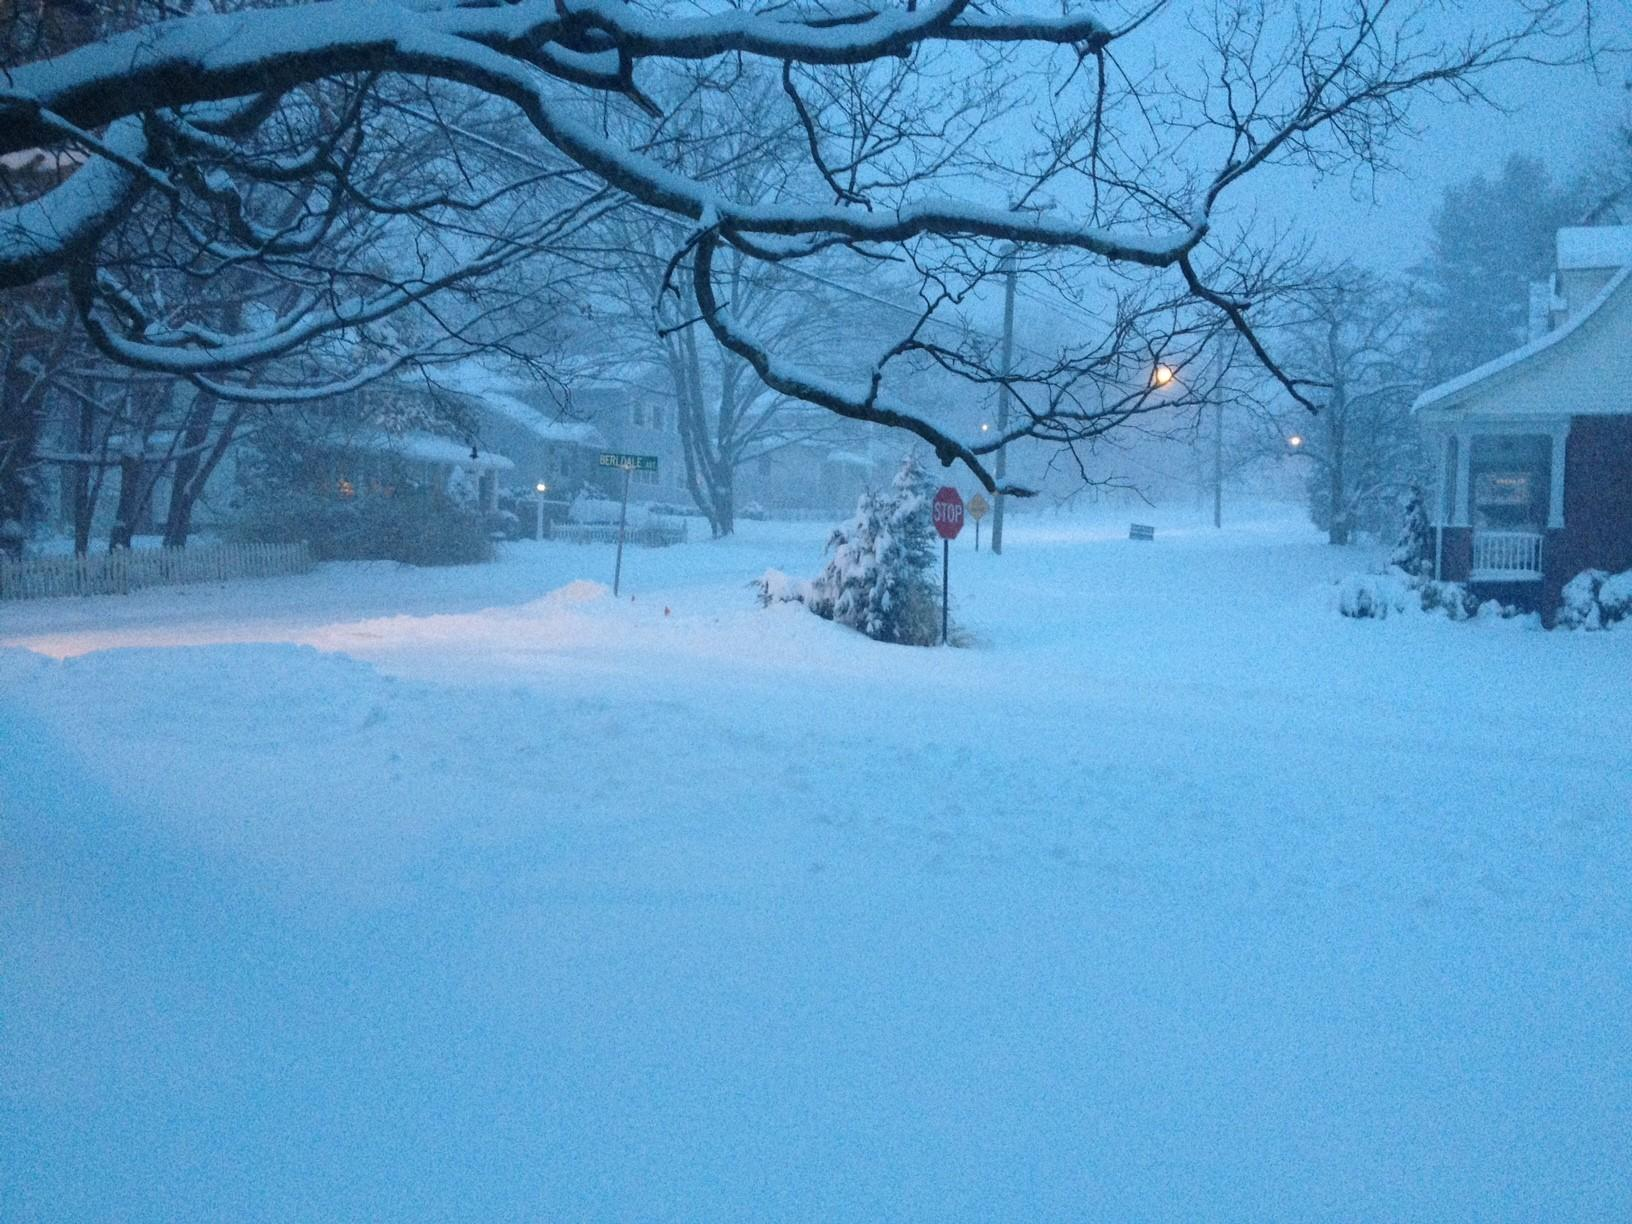 Scenes like this greeted residents throughout Connecticut on Wednesday morning as a storm that was expected to drop four to eight inches got started.